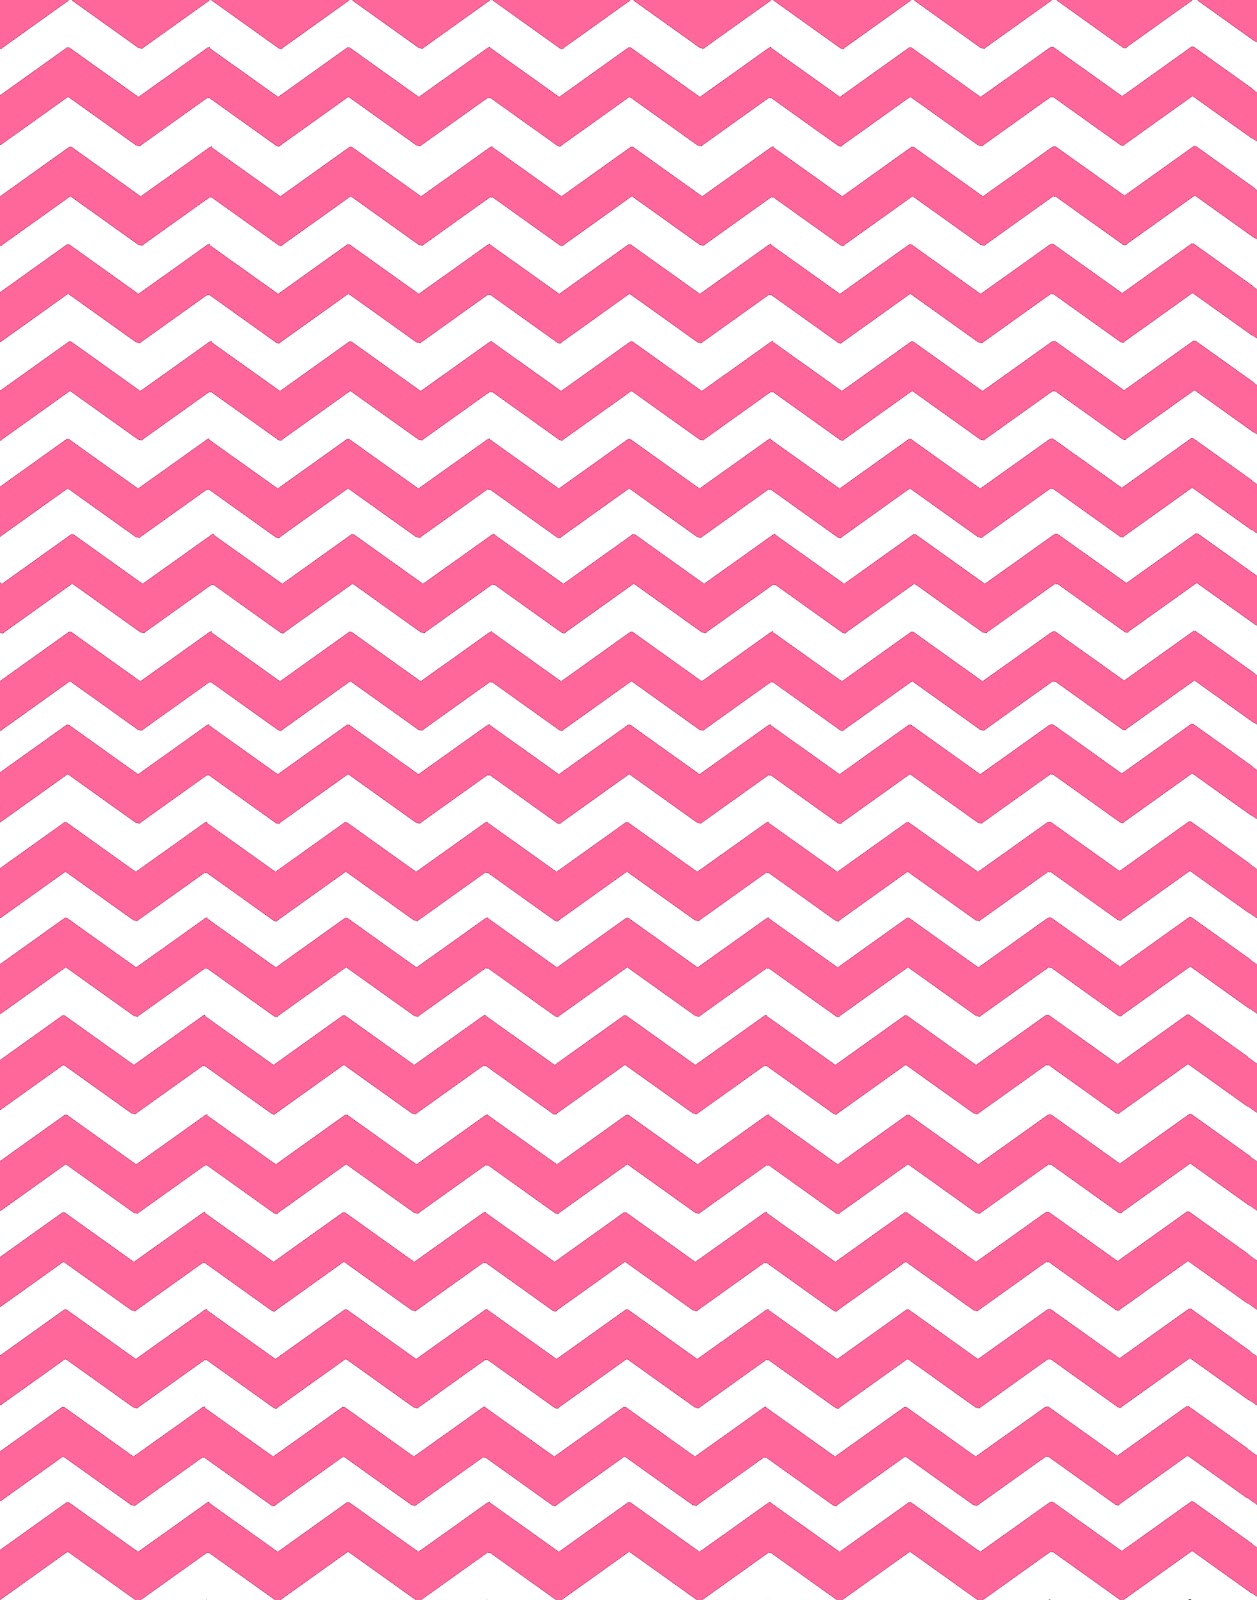 139 00 149 pink and gray chevron d panel red pink curtains french door light chevron cream long quickview pink ds light blocking curtains chevron boys grey red velvet